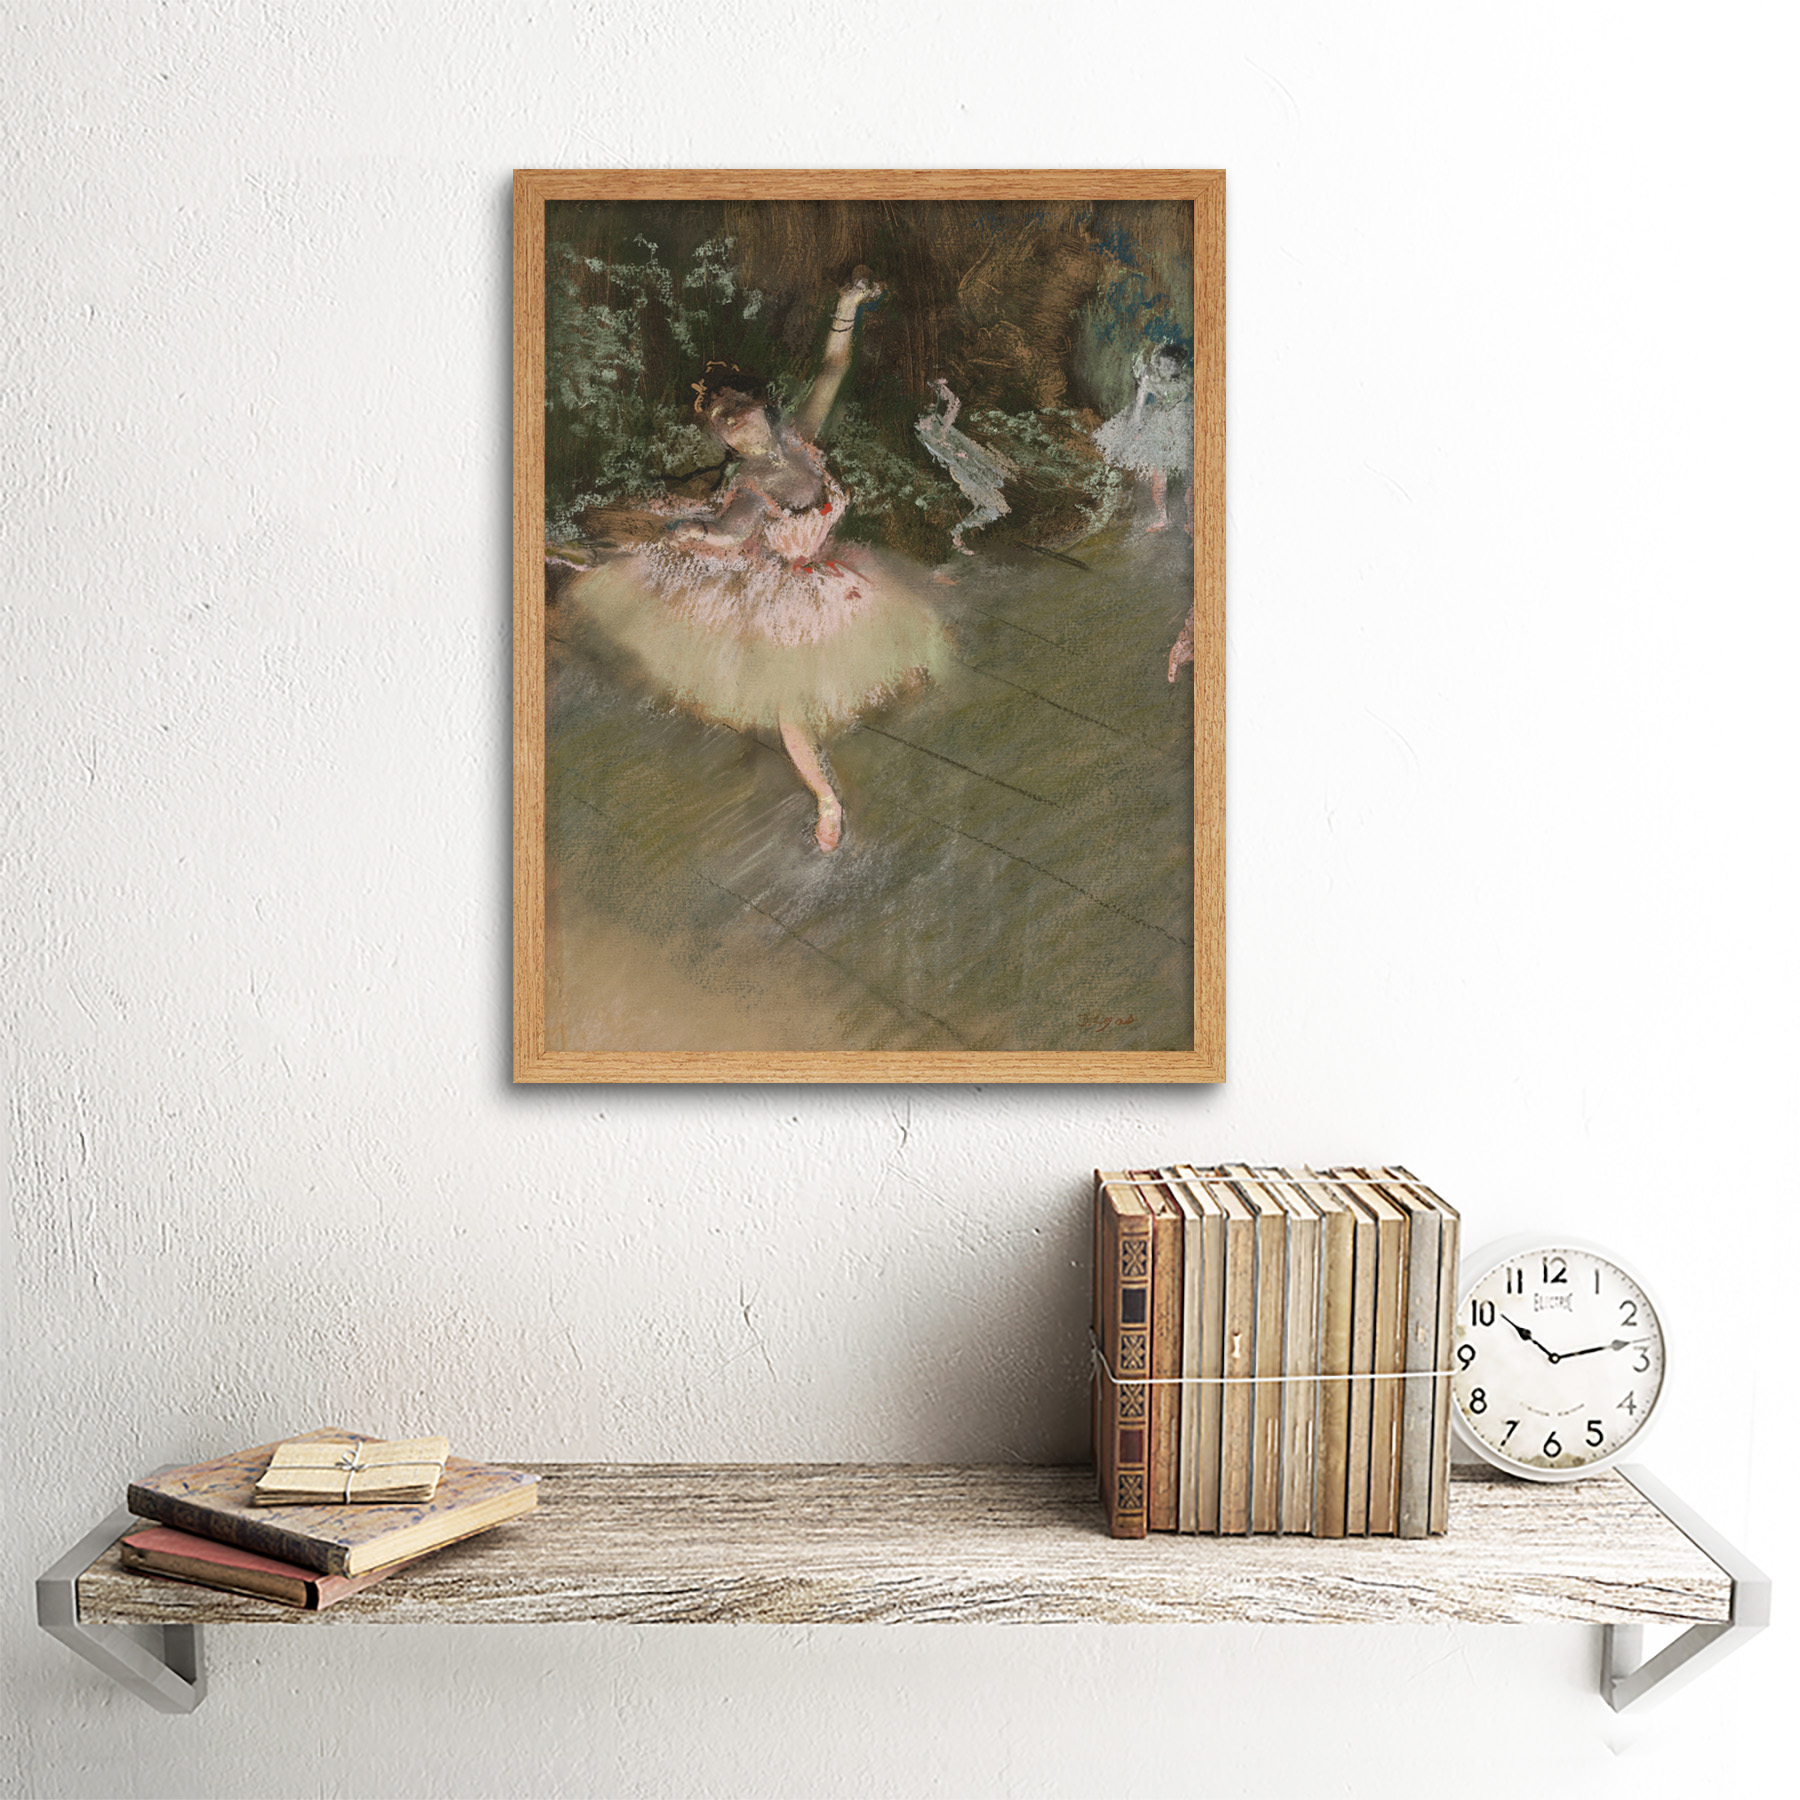 Edgar-Degas-The-Star-Art-Print-Framed-12x16 thumbnail 13